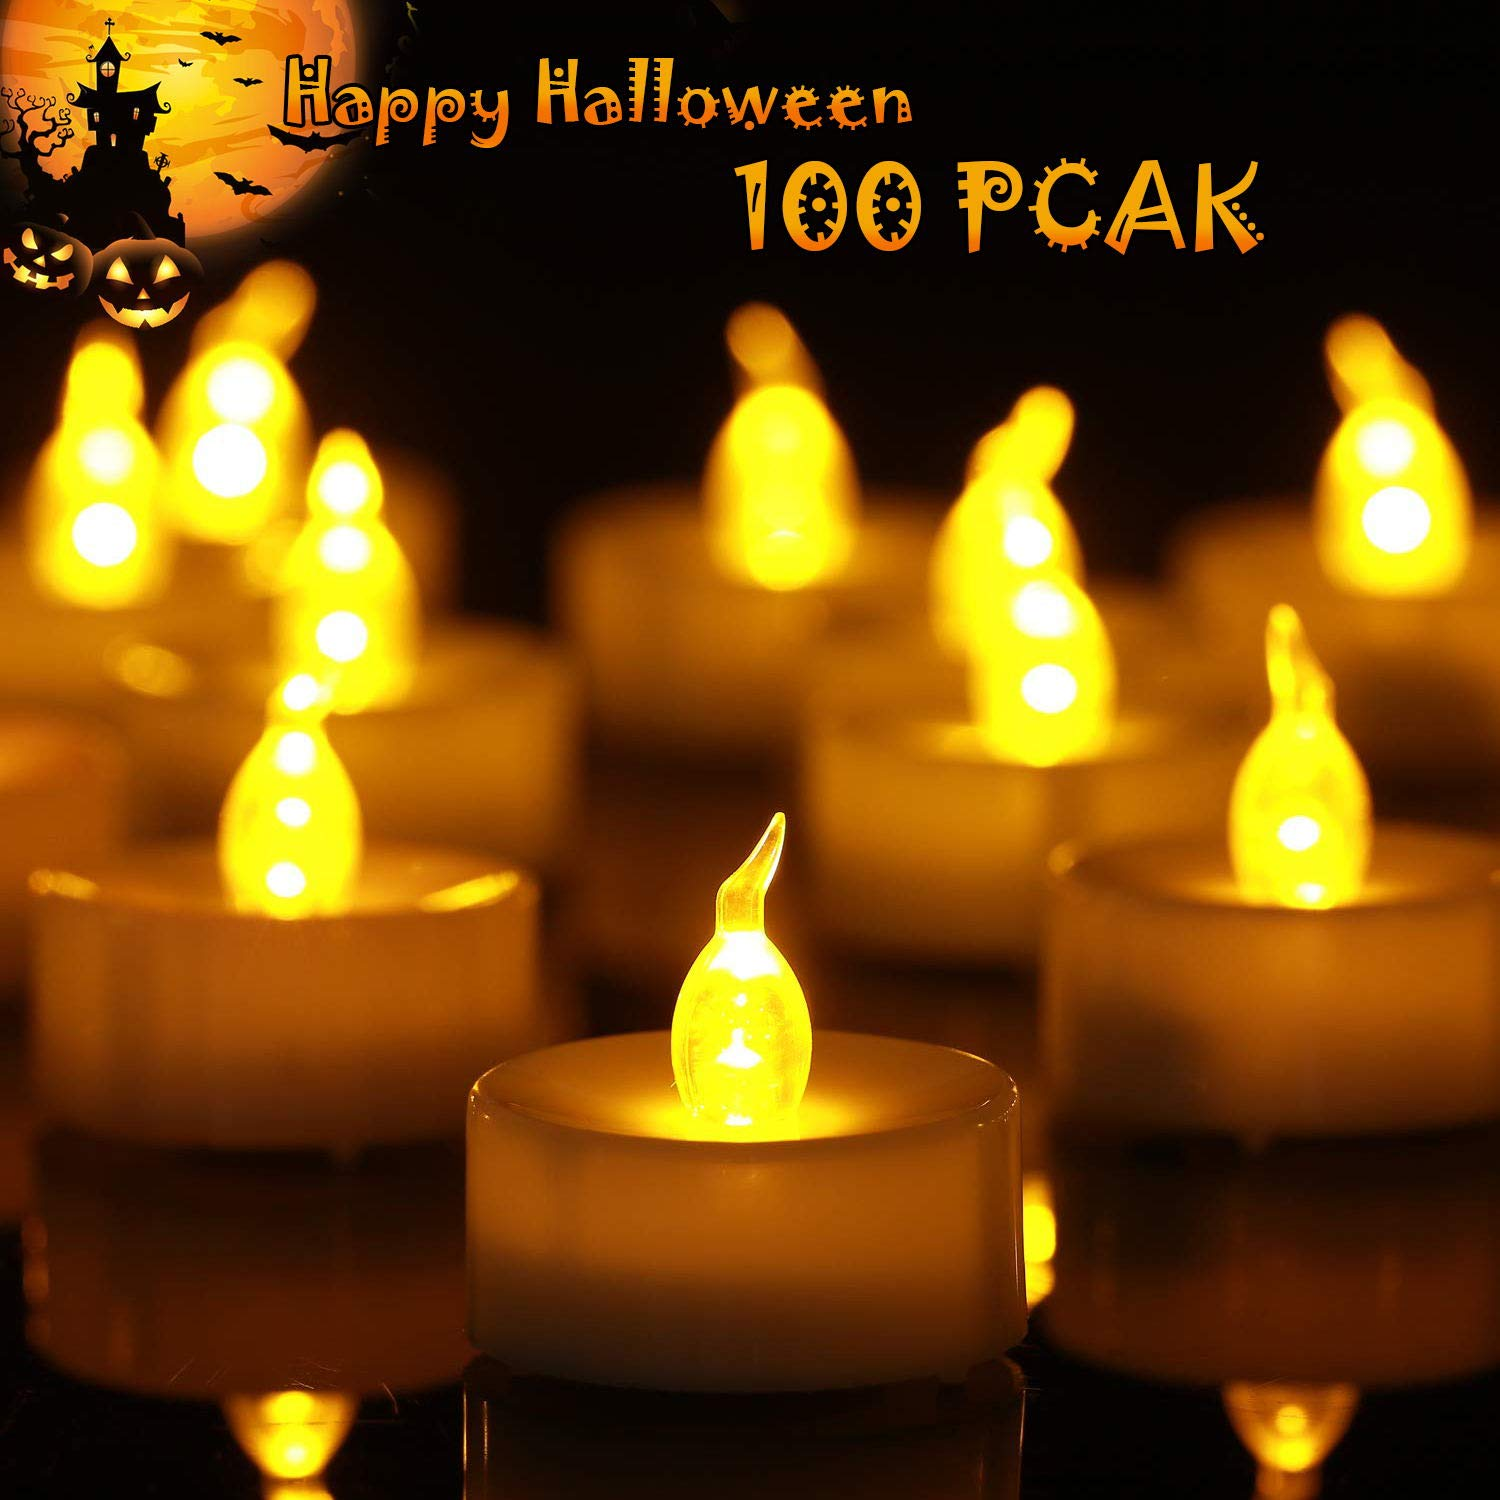 Homemory Battery Tea Lights Bulk, 100-Pack Flameless Tea Light Candles, Electric Tea Lights with Flickering, Long-Lasting Battery Life, Amber Yellow, Ideal for Votive, Halloween, Parties by Homemory